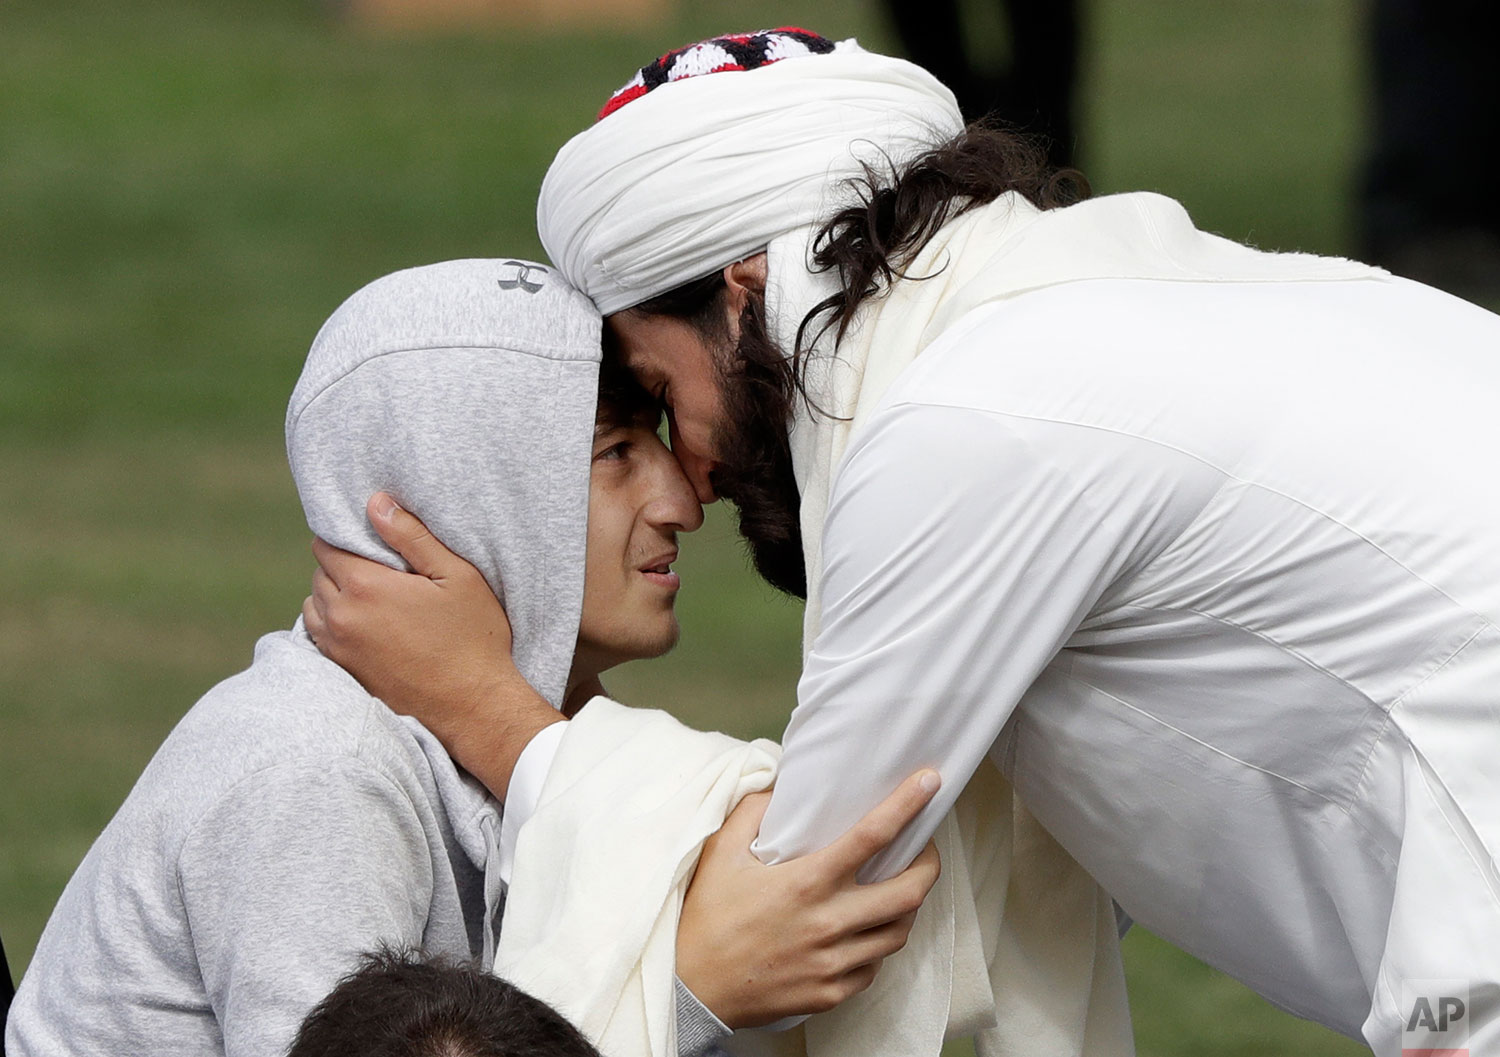 Zaid Mustafa, son and brother of victims from last week's mosque shootings is welcomed to Friday prayers at Hagley Park in Christchurch, New Zealand, Friday, March 22, 2019. Thousands of people gathered in a Christchurch city park near the Al Noor mosque where a gunman killed some of the 50 worshippers in a white supremacist attack on two mosques.  (AP Photo/Mark Baker)